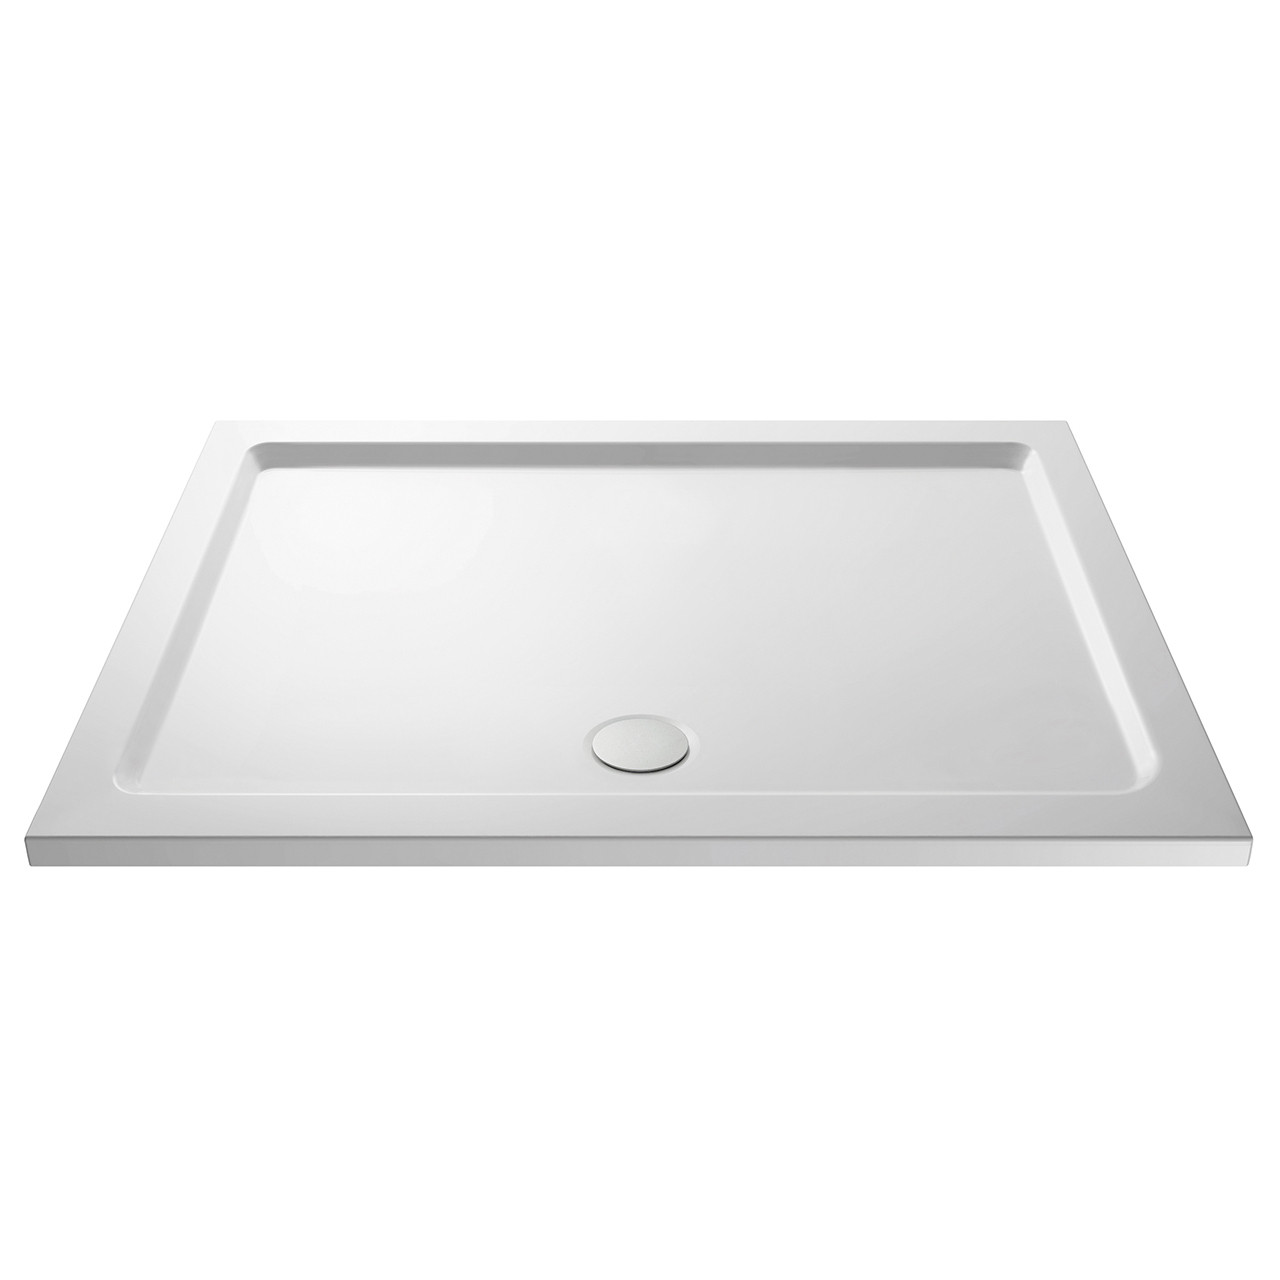 Premiere Pearlstone 1500mm x 900mm x 40mm Rectangular Shower Tray with Centre Waste - NTP044